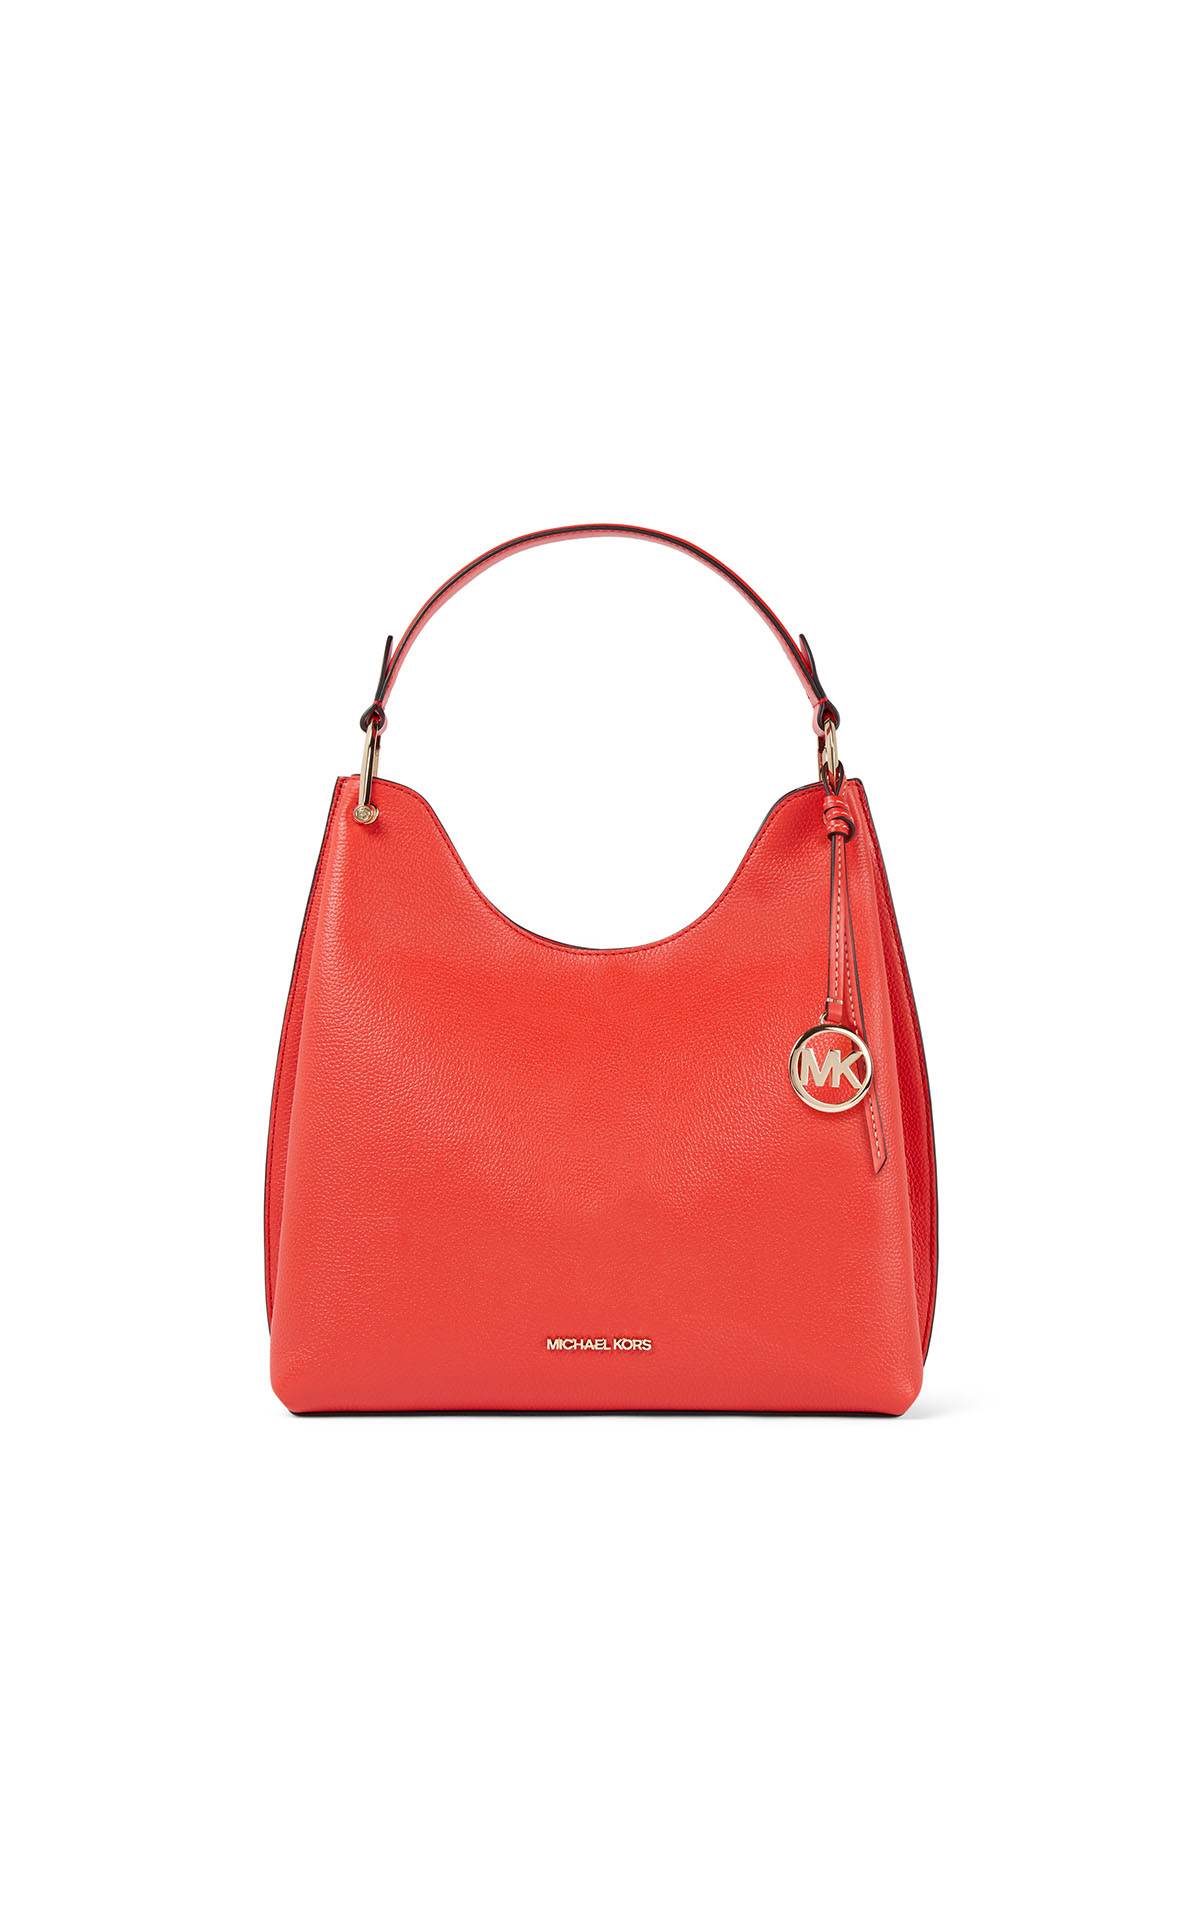 Michael Kors joan large satchel at The Bicester Village Shopping Collection